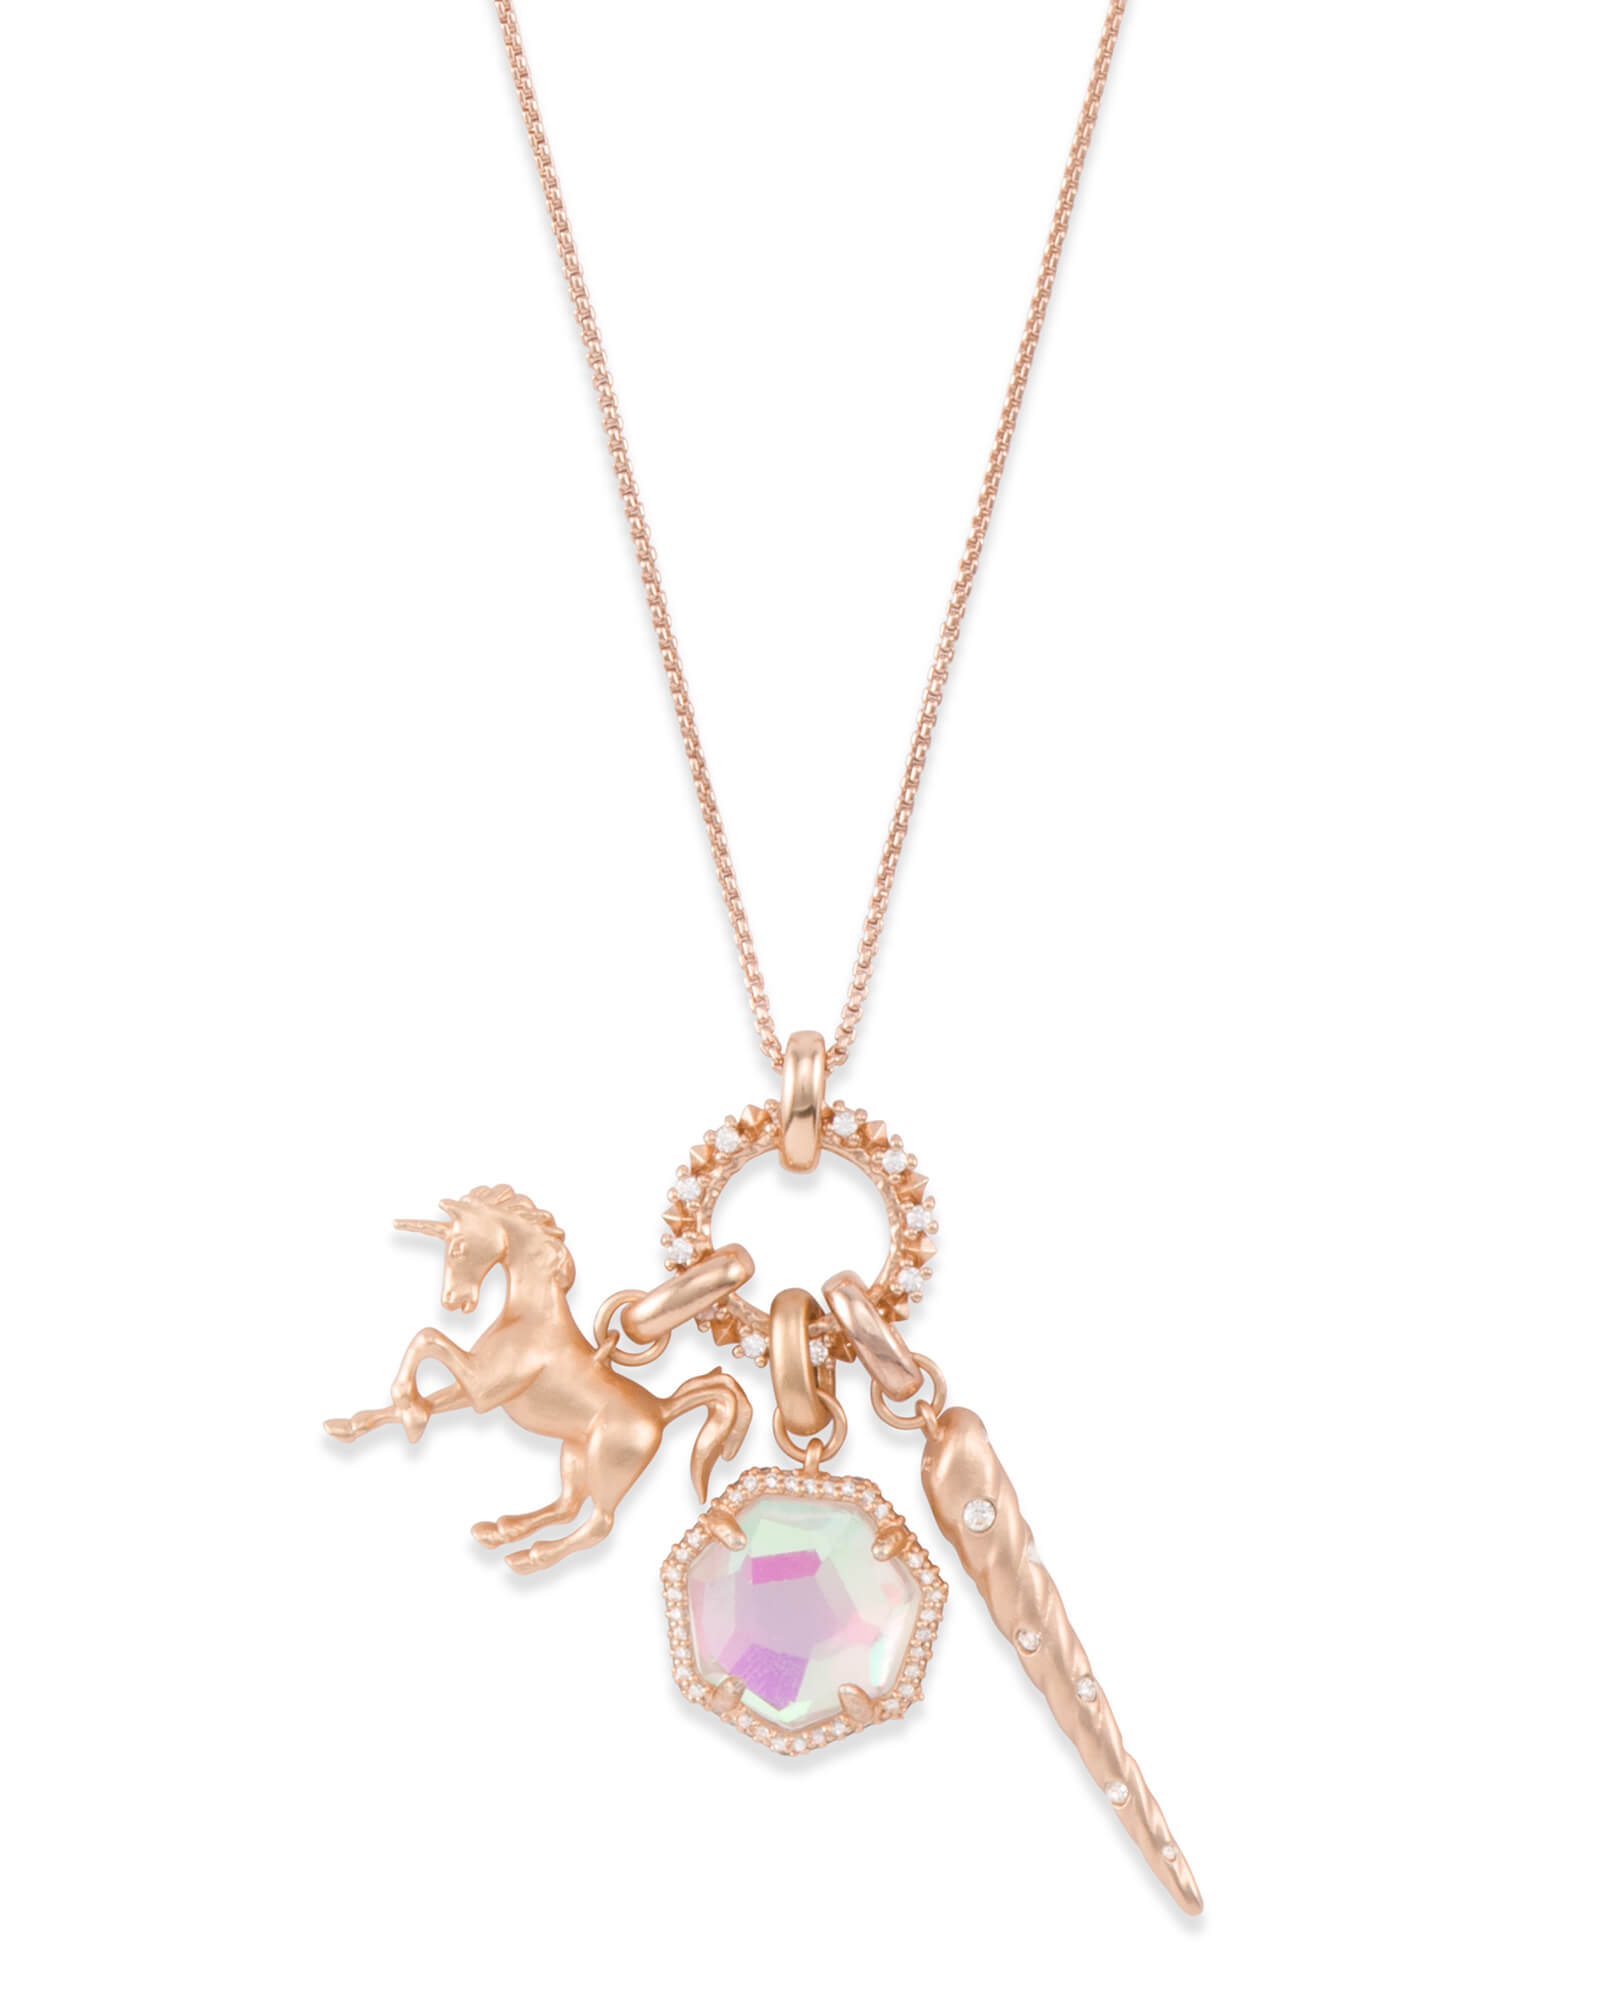 8d979cbd511 Magical Charm Necklace Set in Rose Gold | Kendra Scott